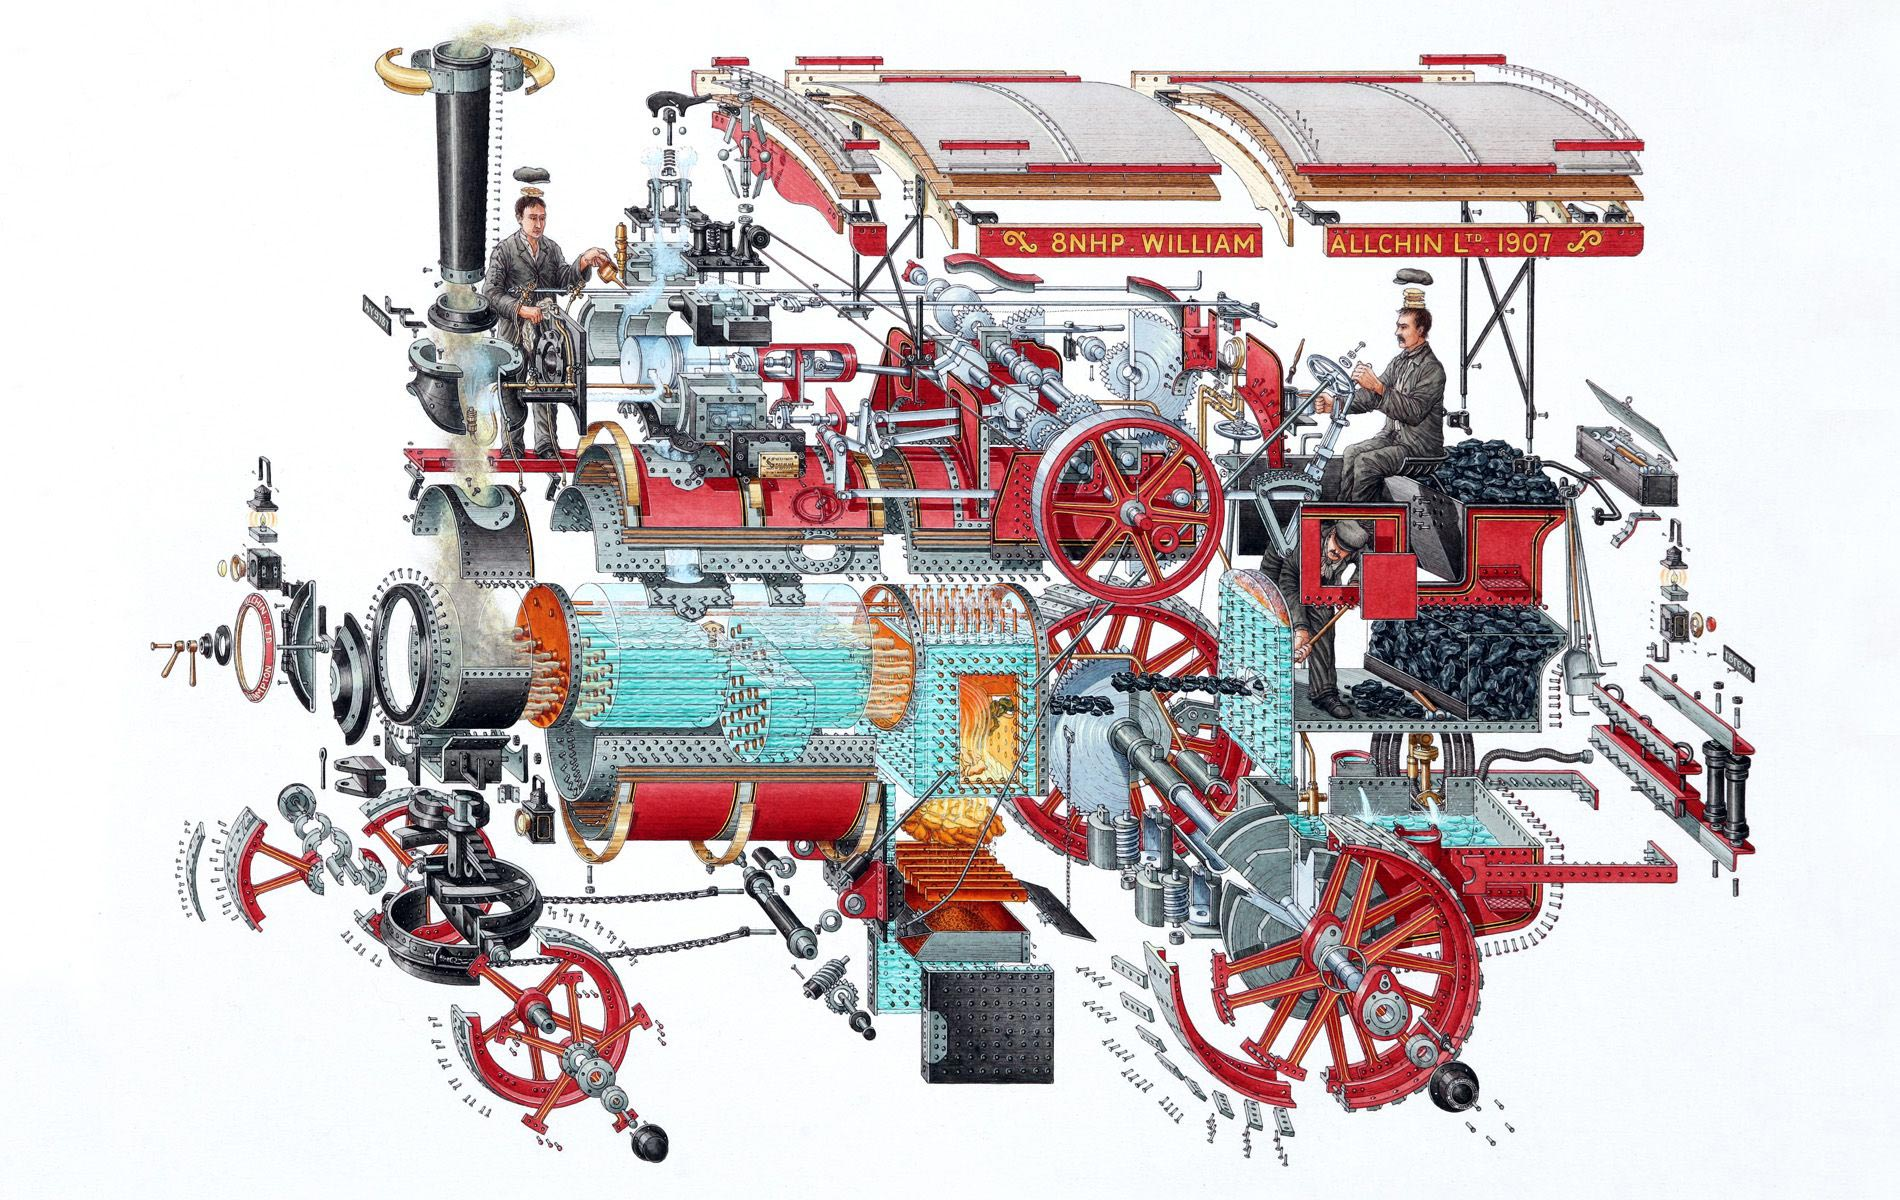 William Allchin Traction engine cutaway